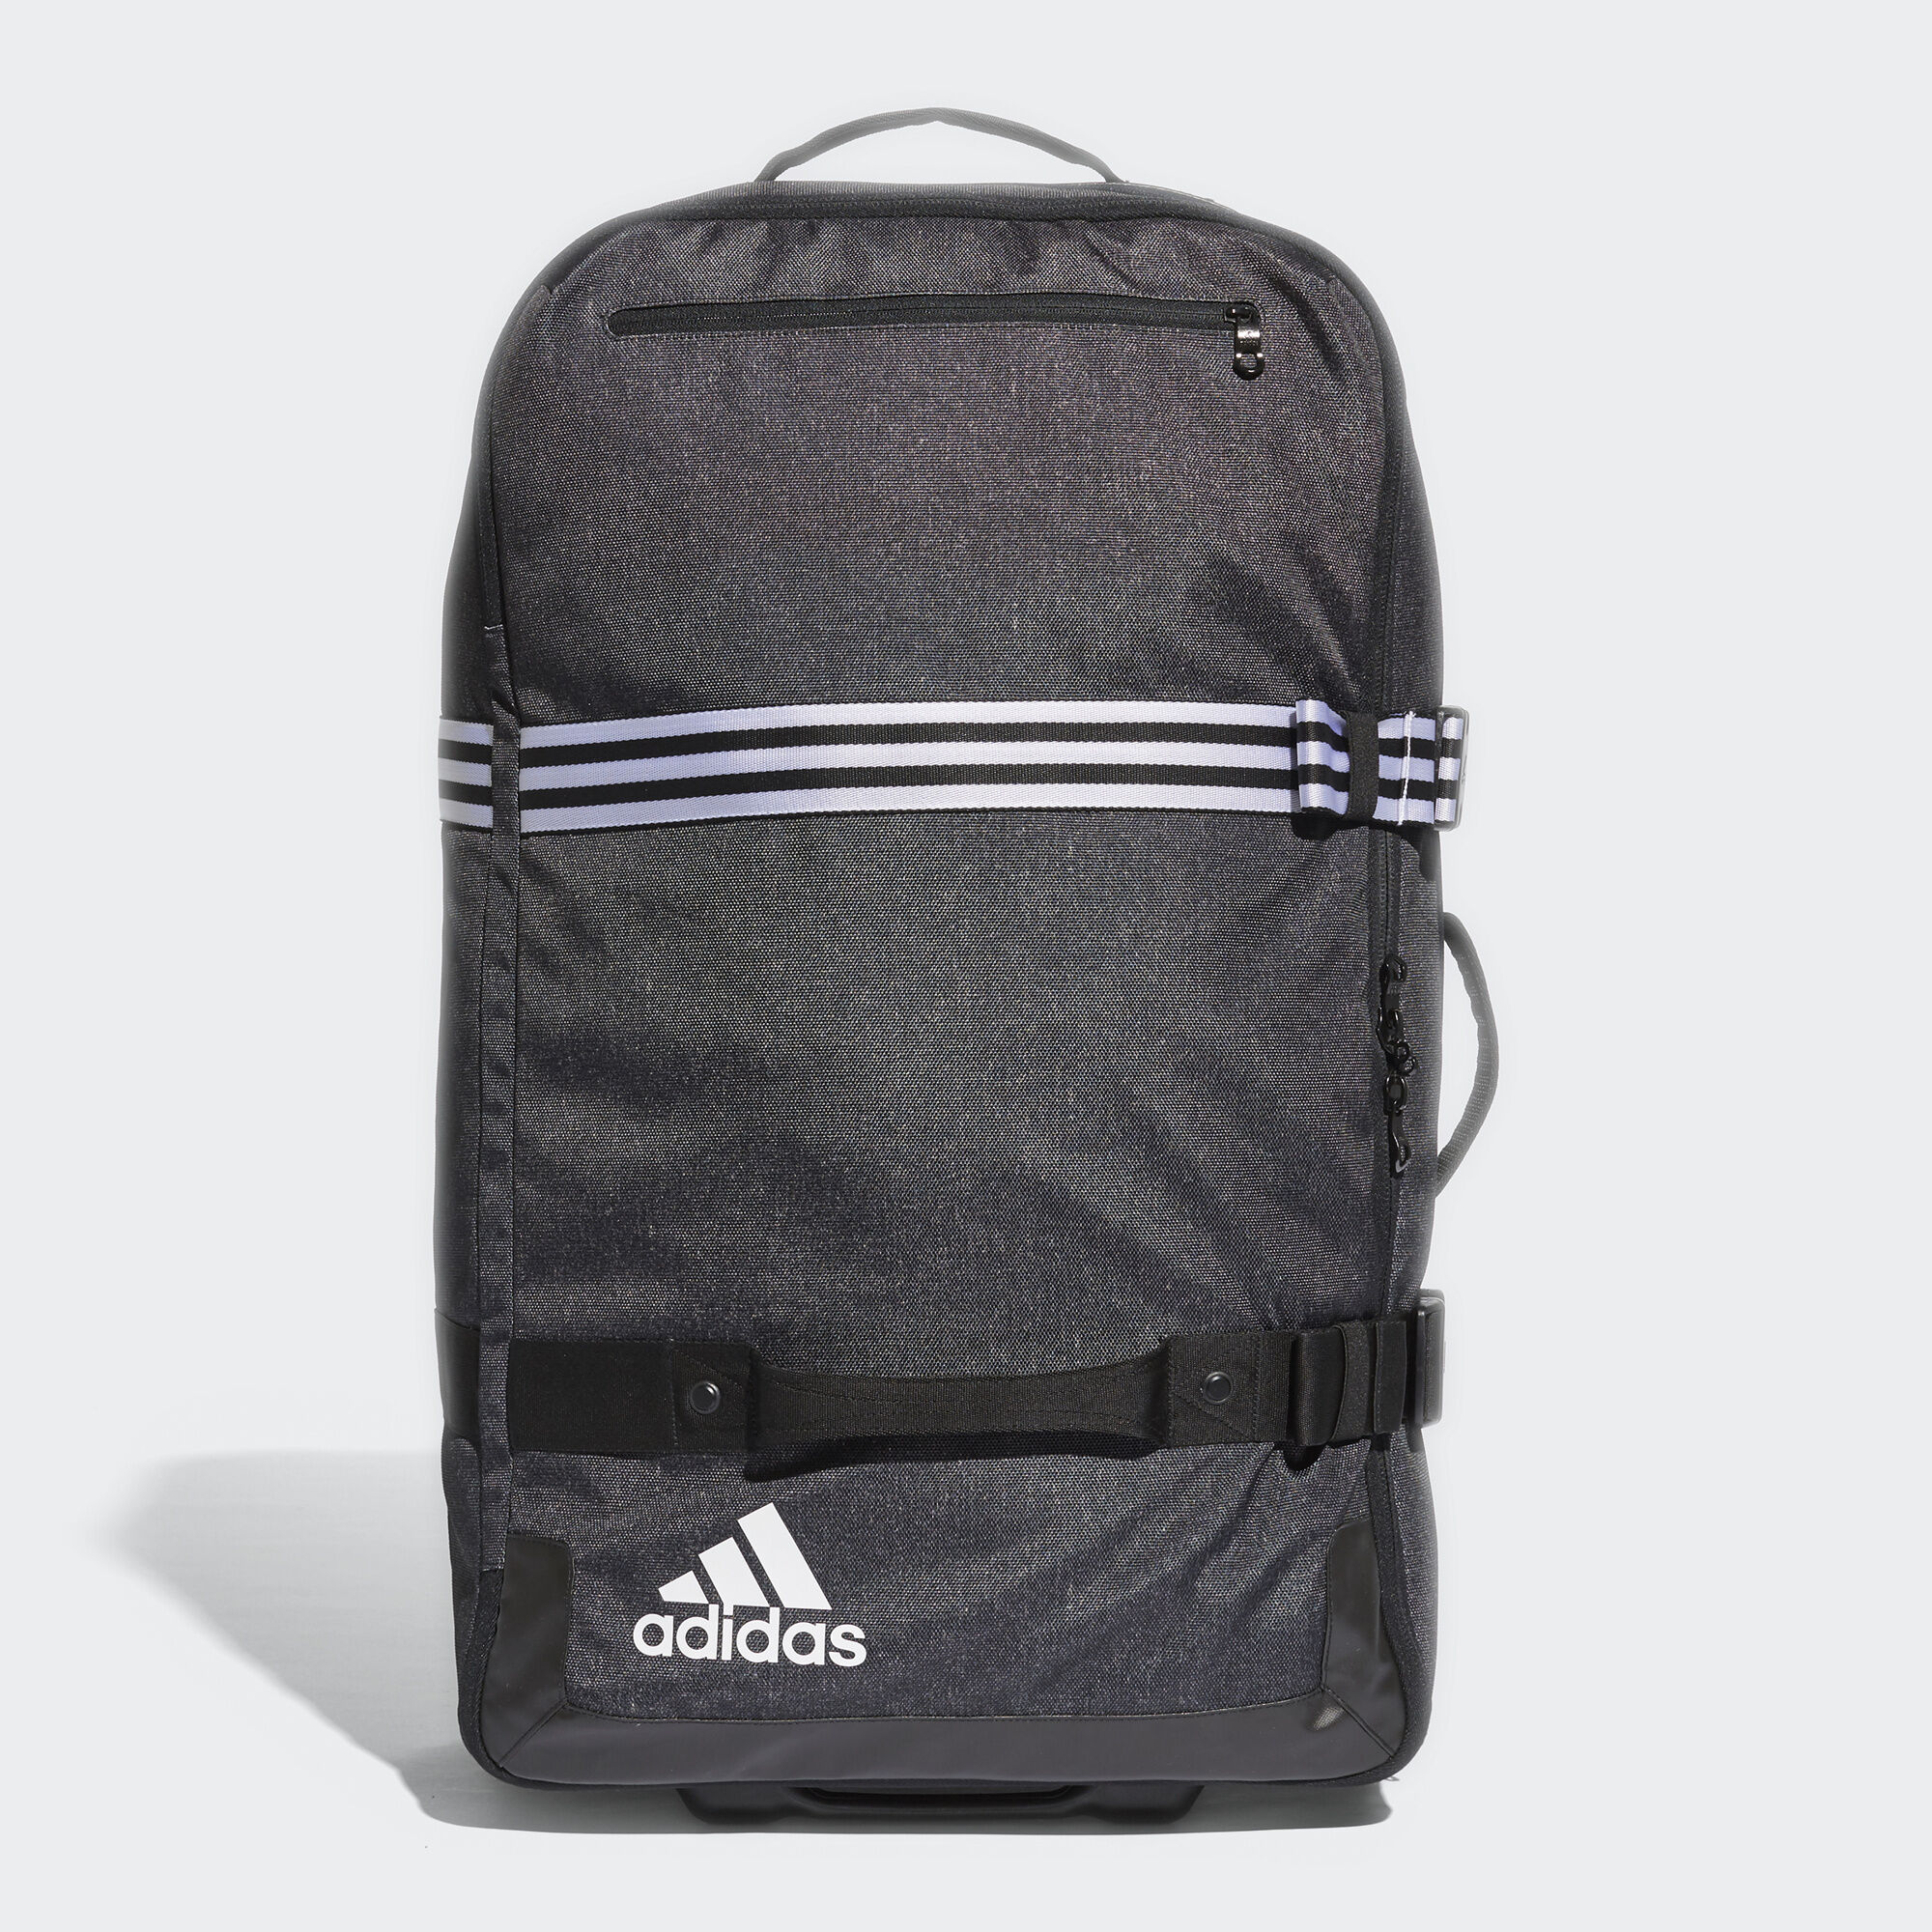 Buy adidas trolley backpack   OFF44% Discounted 1d77c1c09a665